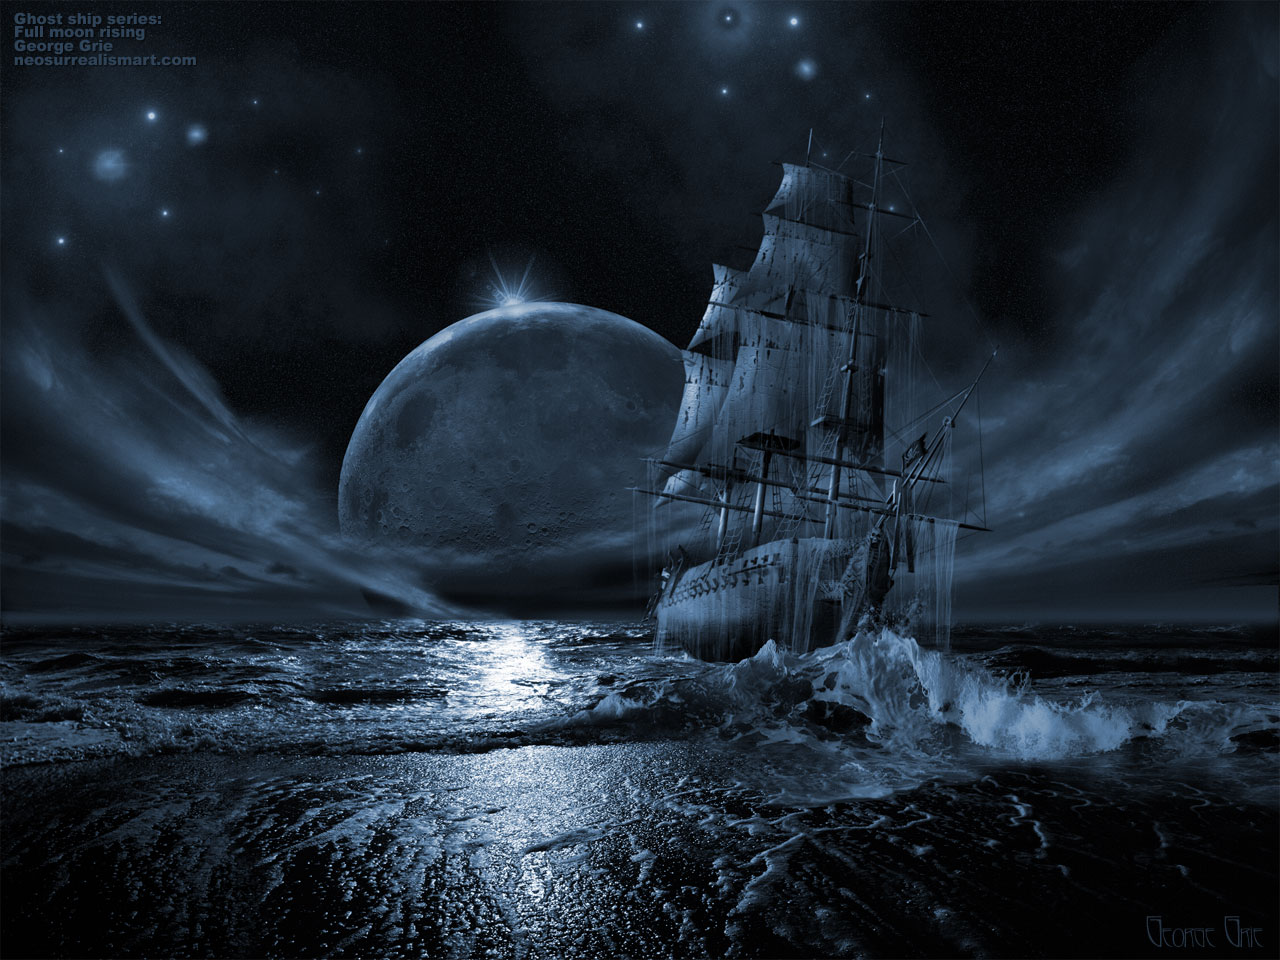 ... 3D artist George Grie: Ghost ship series: Full moon rising 3D